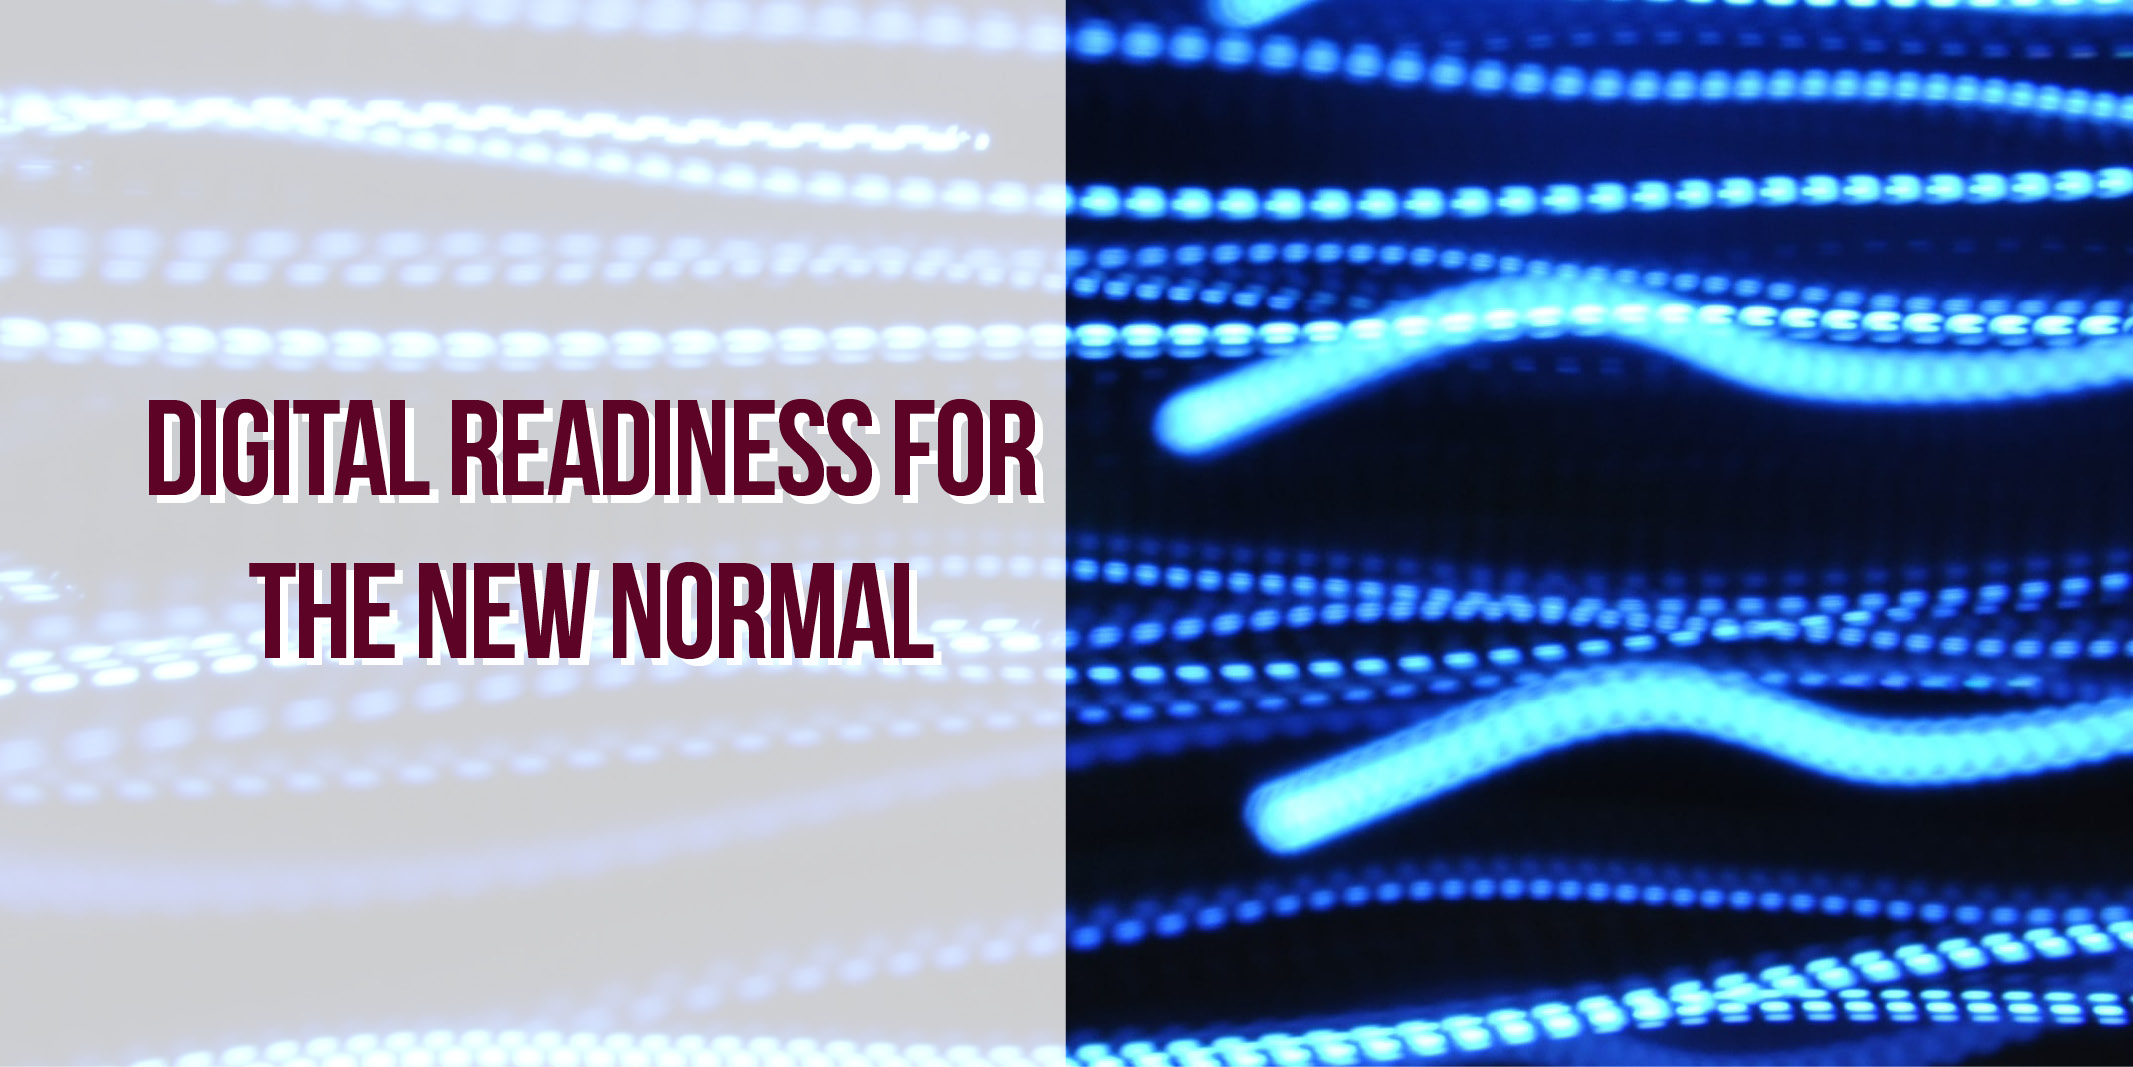 Digital Readiness for the New Normal